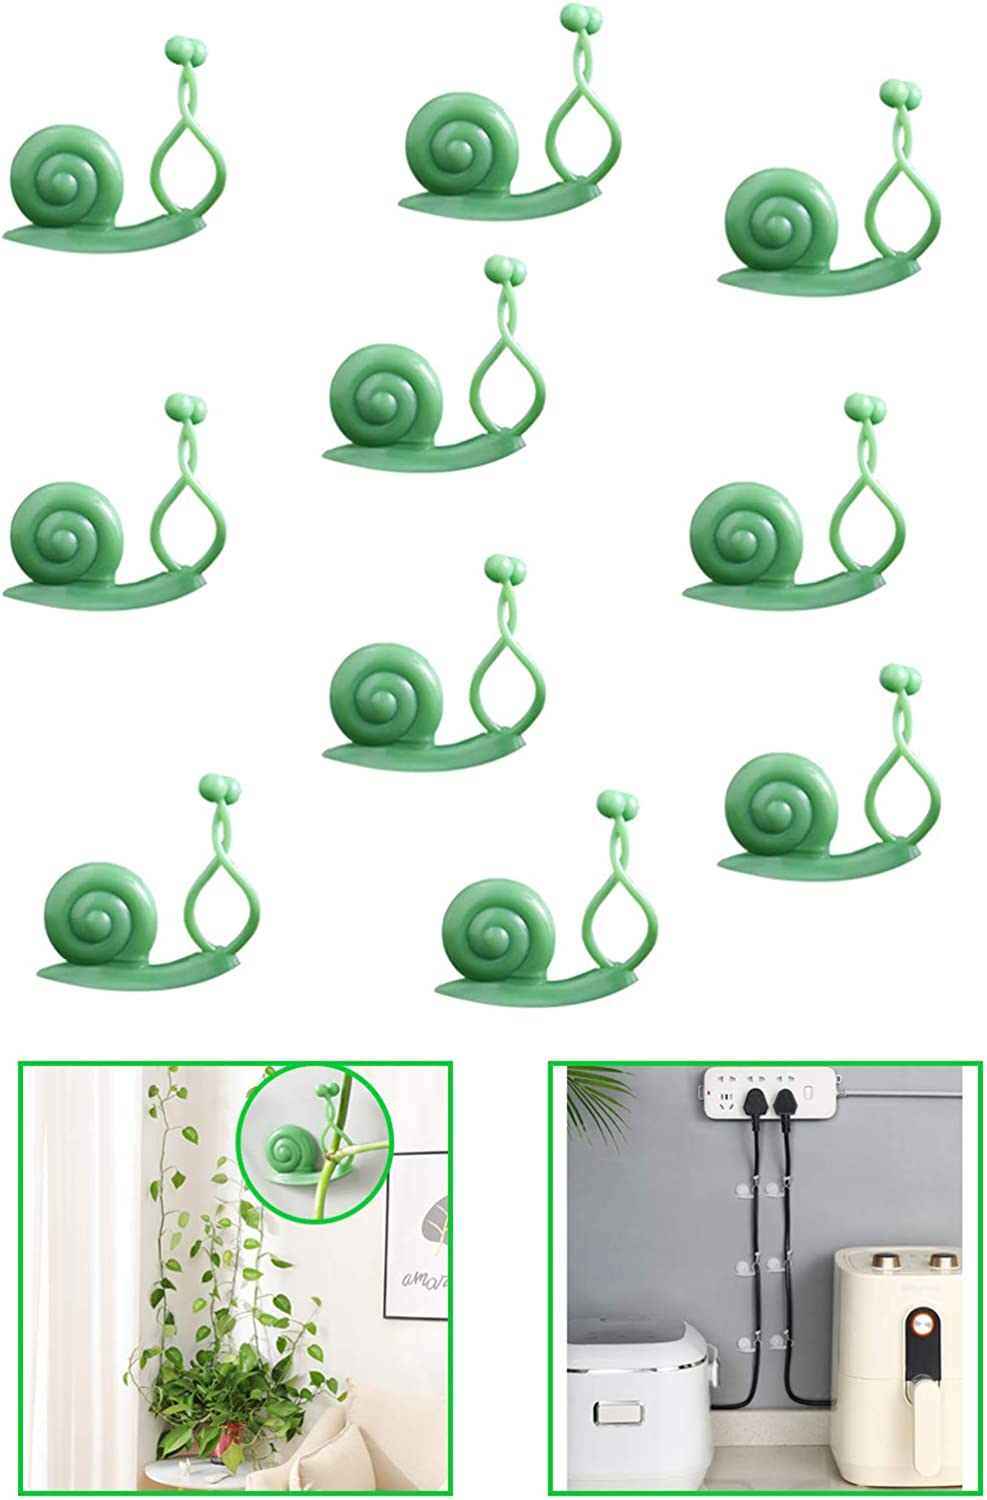 Plant Fixer Clips Invisible Wall Fixture Vine Hooks Climbing Support Holder Sticky Training Wire Ties Indoor Ceiling 30pcs Snails Self Adhesive Binding for Home Garden Wall Decoratione (Green)